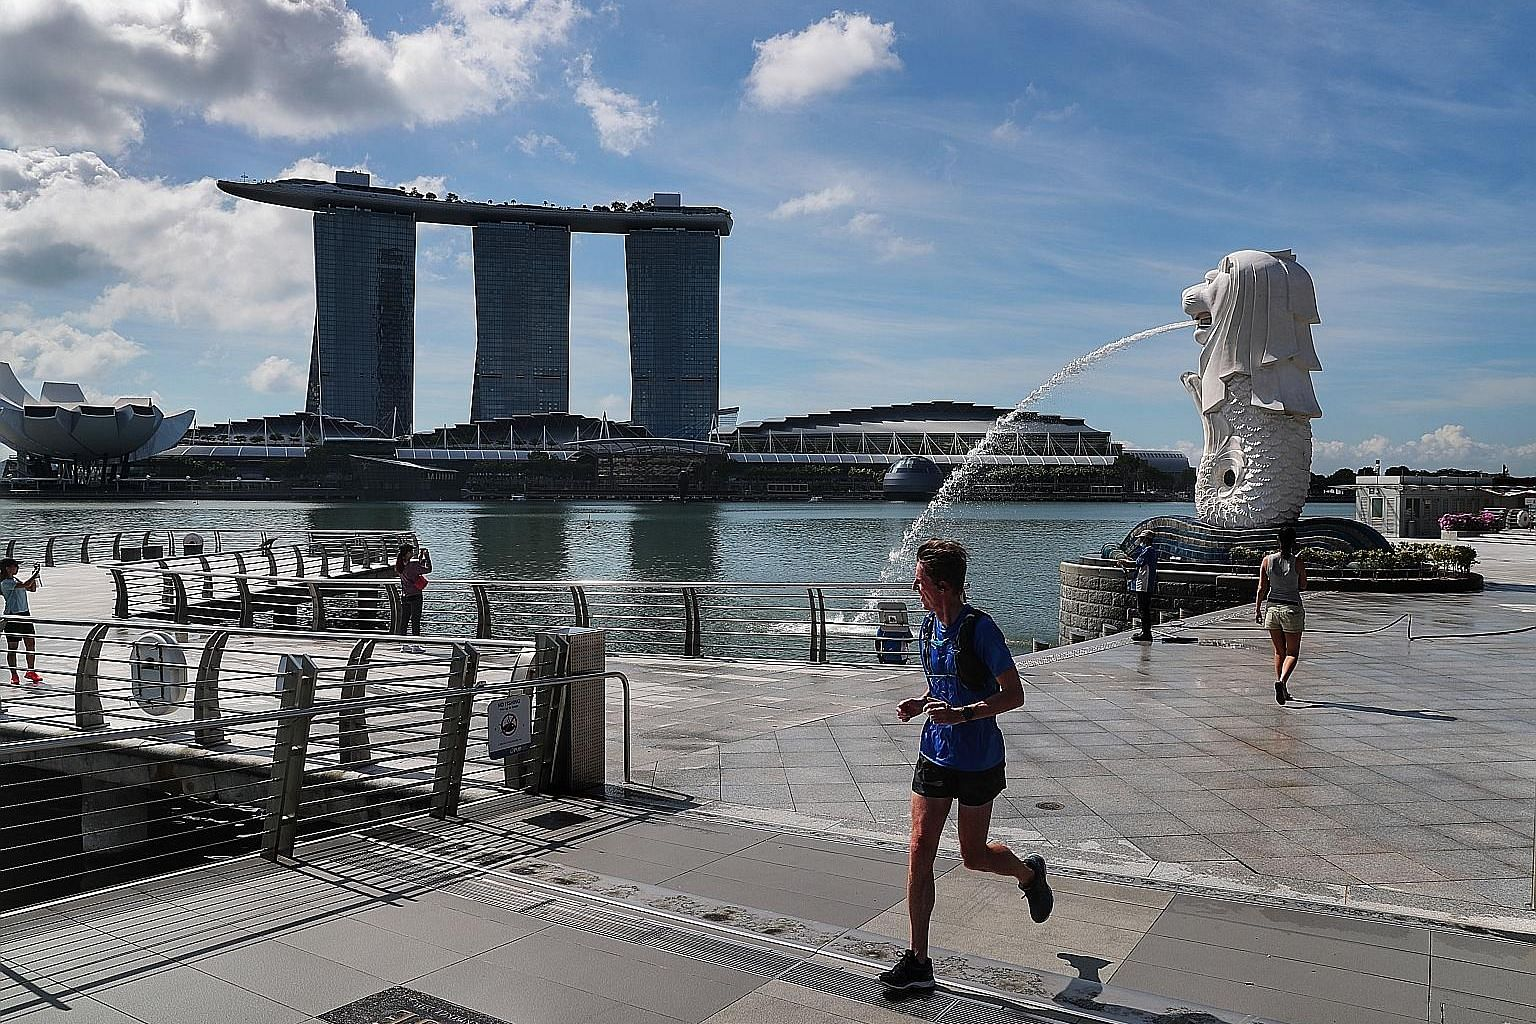 An almost empty Merlion Park yesterday. While necessary to contain the spread of the coronavirus, Singapore's circuit breaker measures through this month alone will impede economic growth in the second quarter and pull the economy into a deeper reces